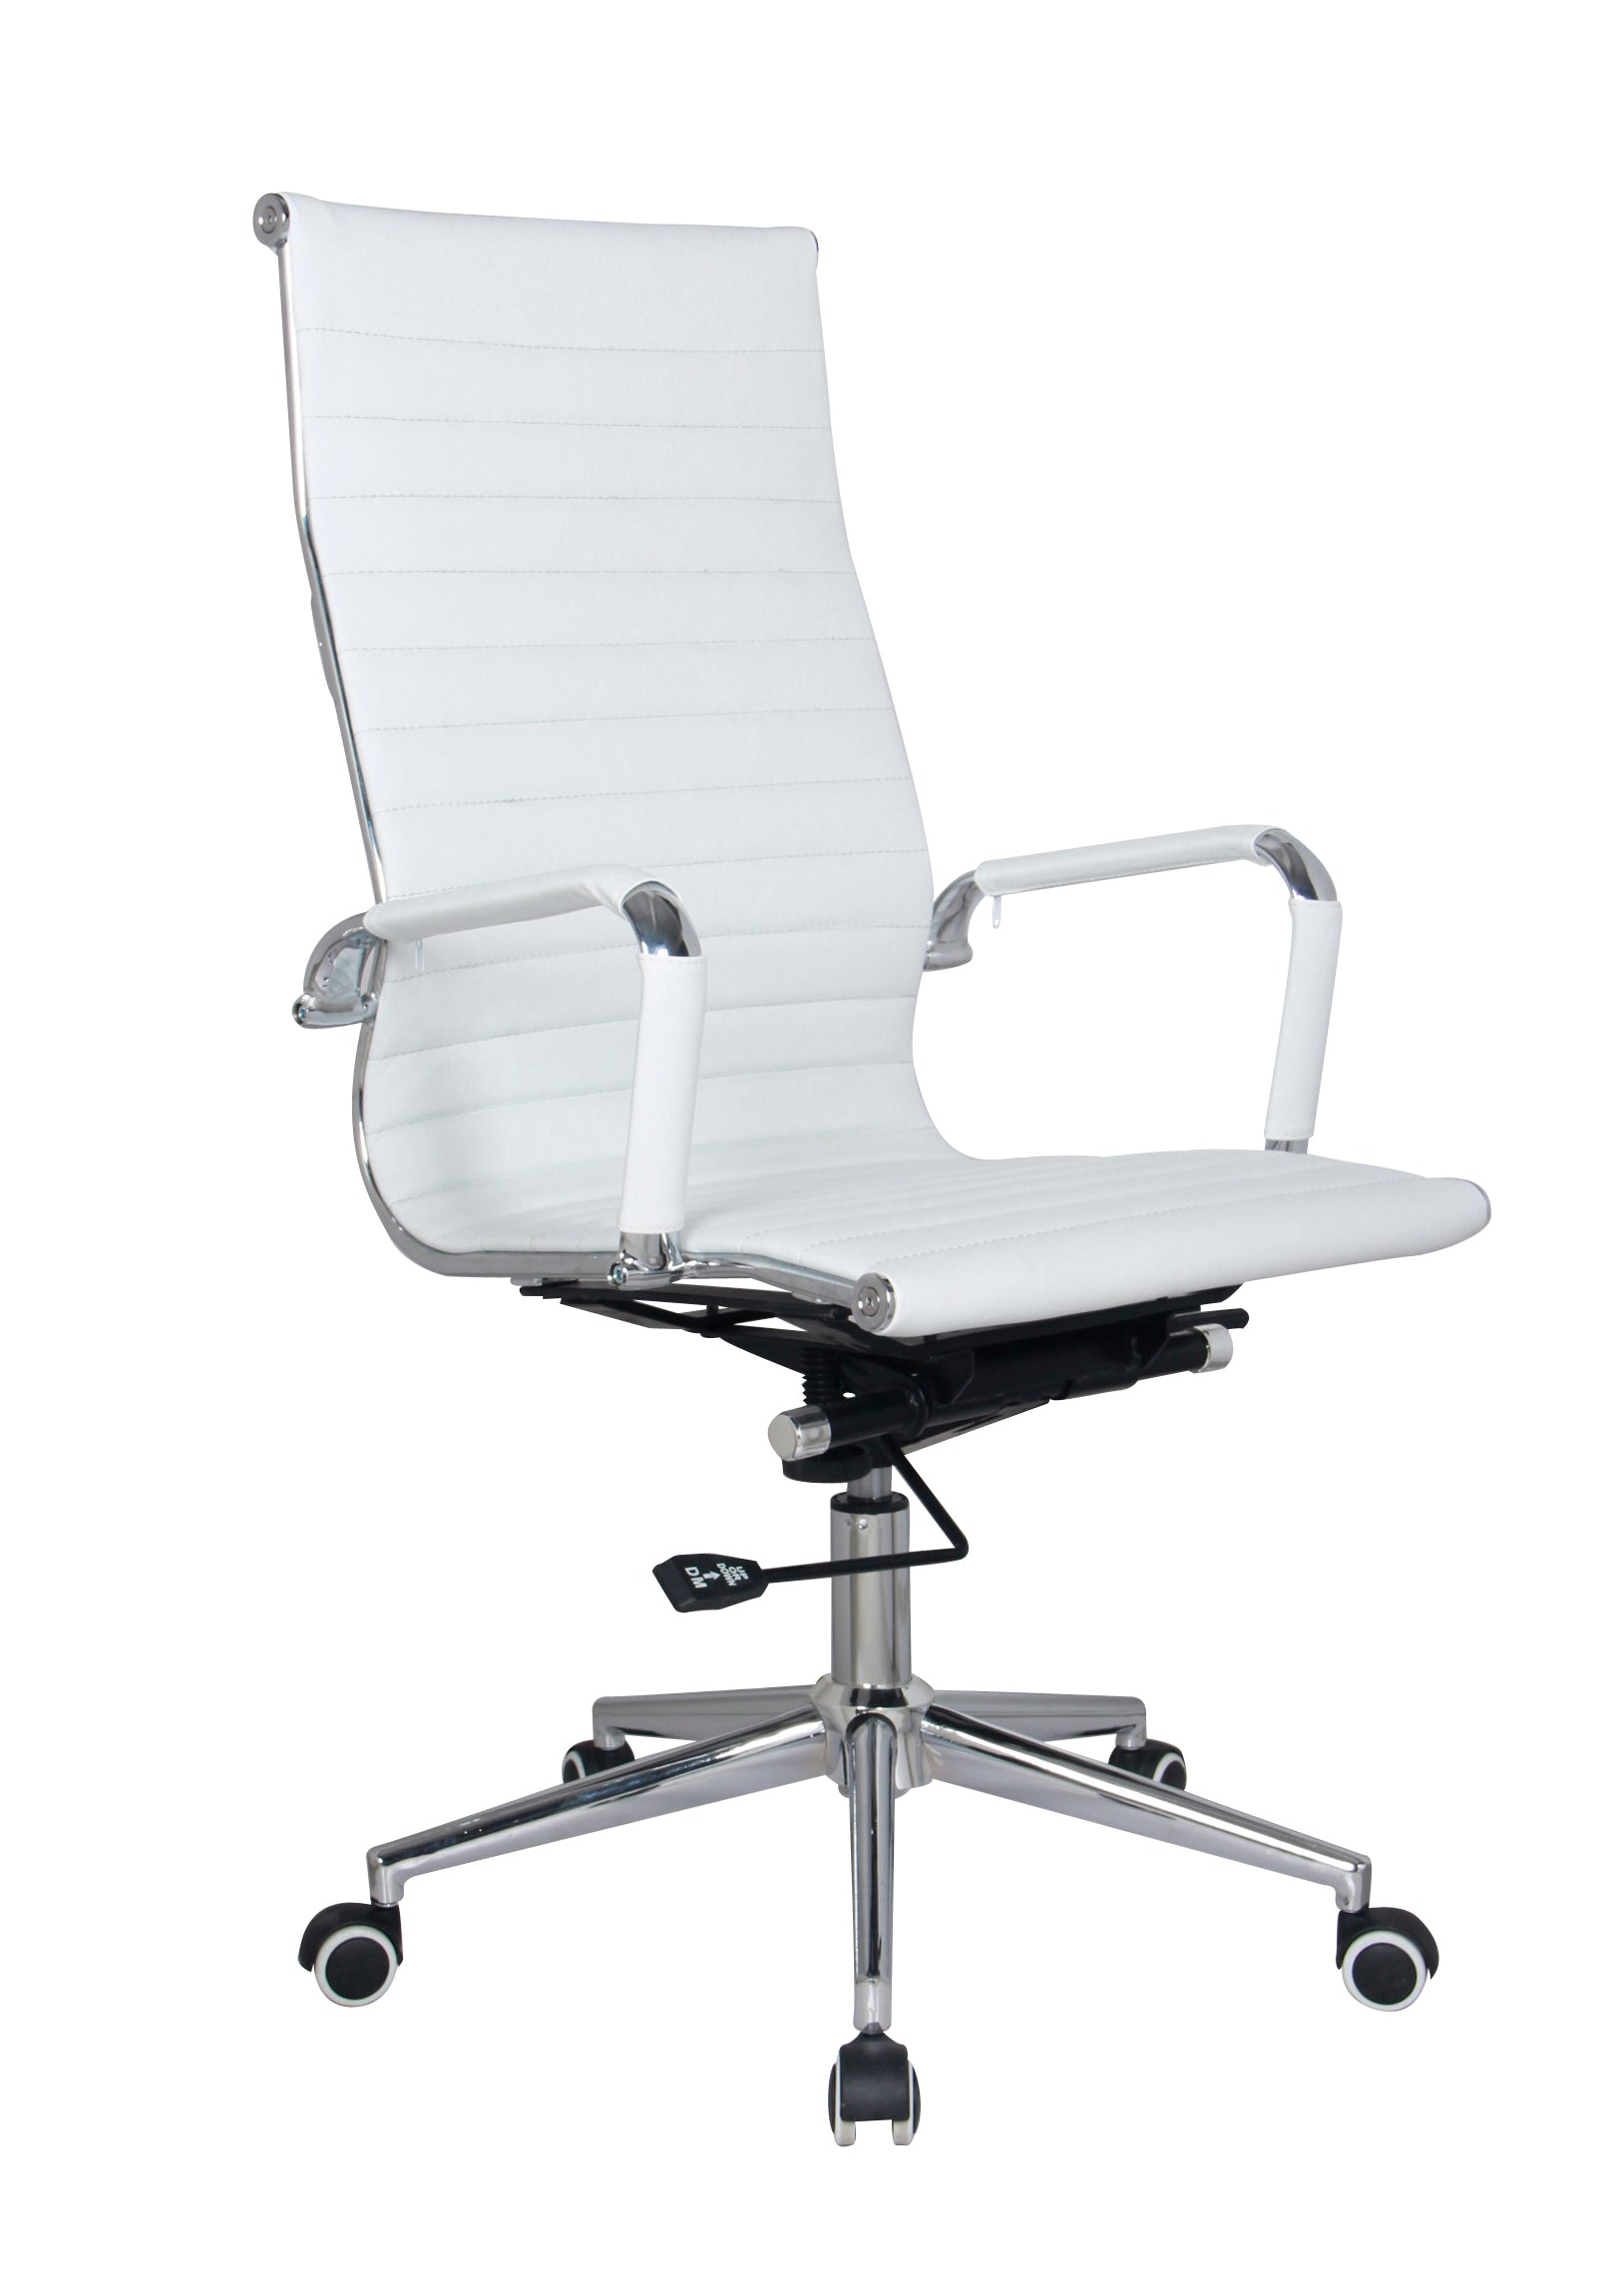 Gentil White Modern Executive Classic Ribbed High Back Office Chair In Vegan  Leather